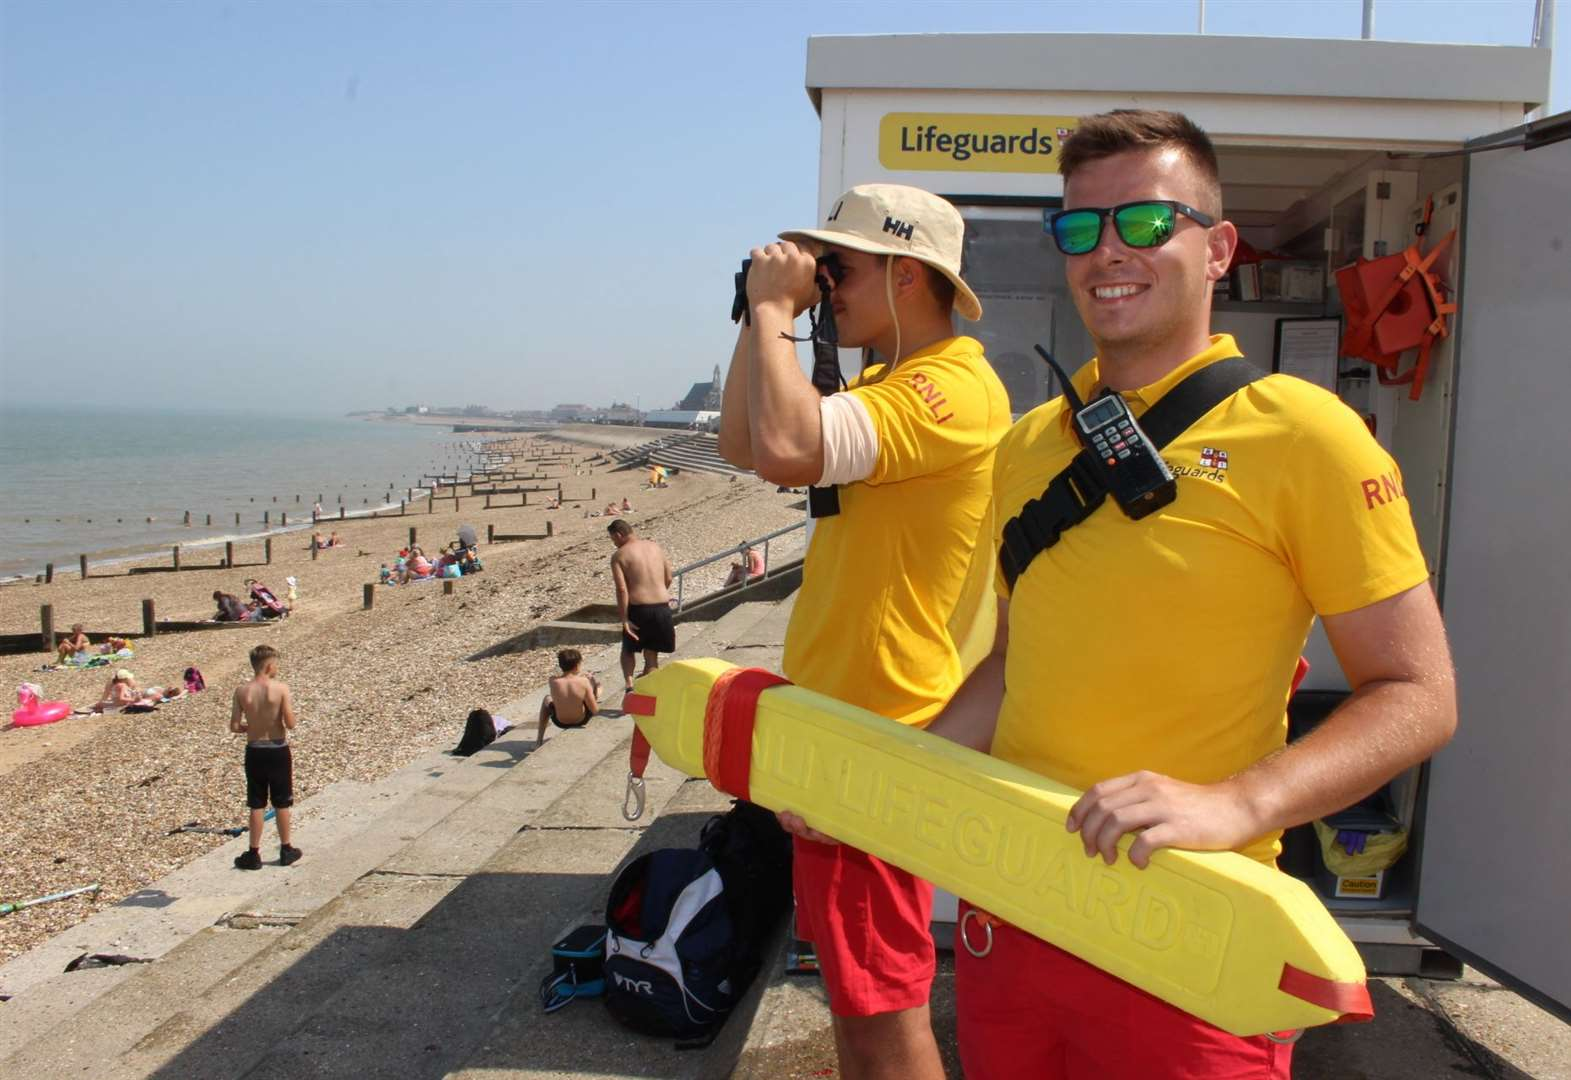 Hunt is on for 'Baywatch' lifeguards